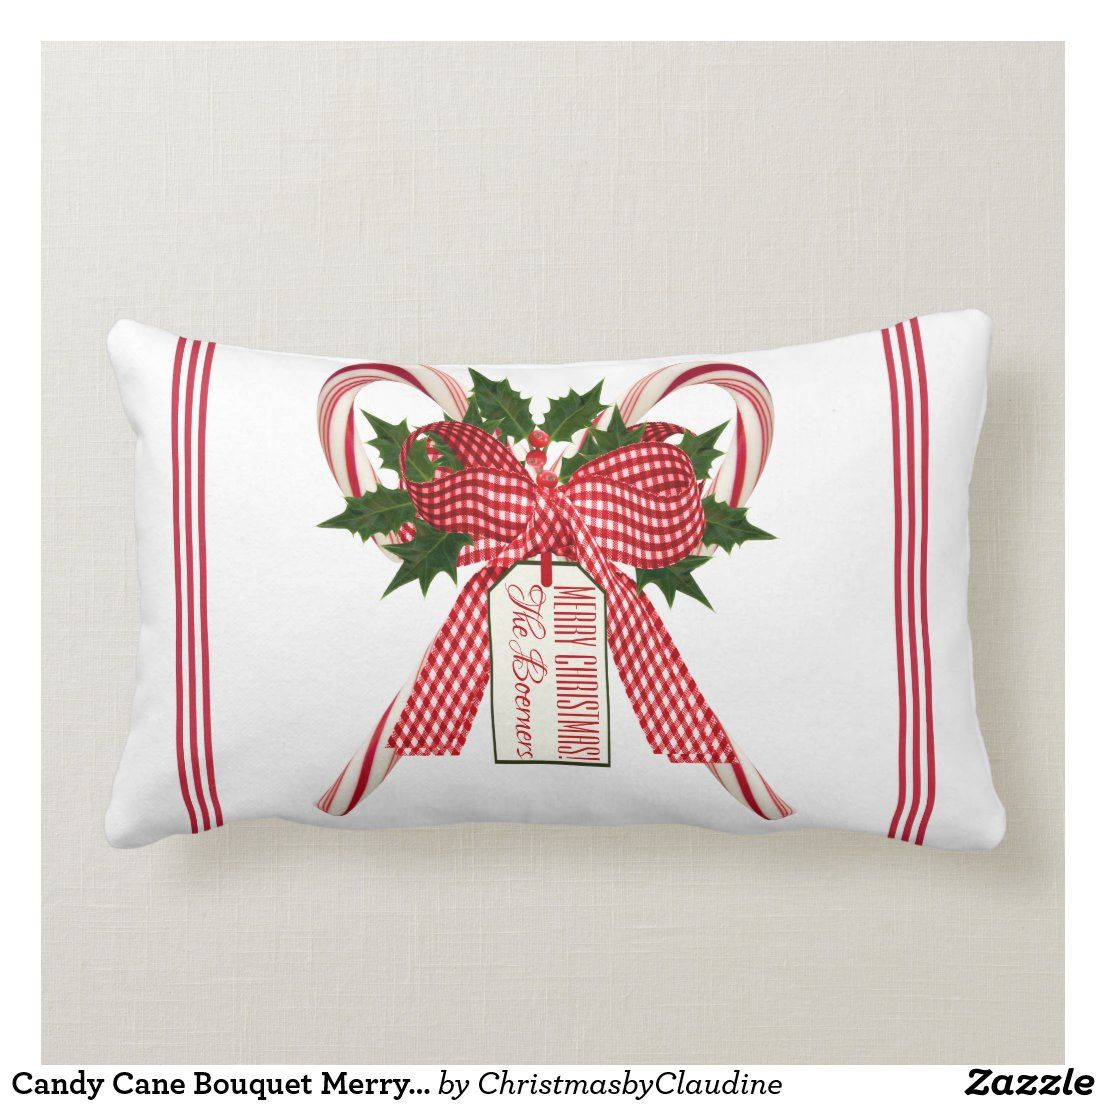 Candy Cane Bouquet Merry Christmas Family Name Lumbar Pillow Zazzle Com In 2020 Merry Christmas Family Throw Pillows Christmas Family Christmas